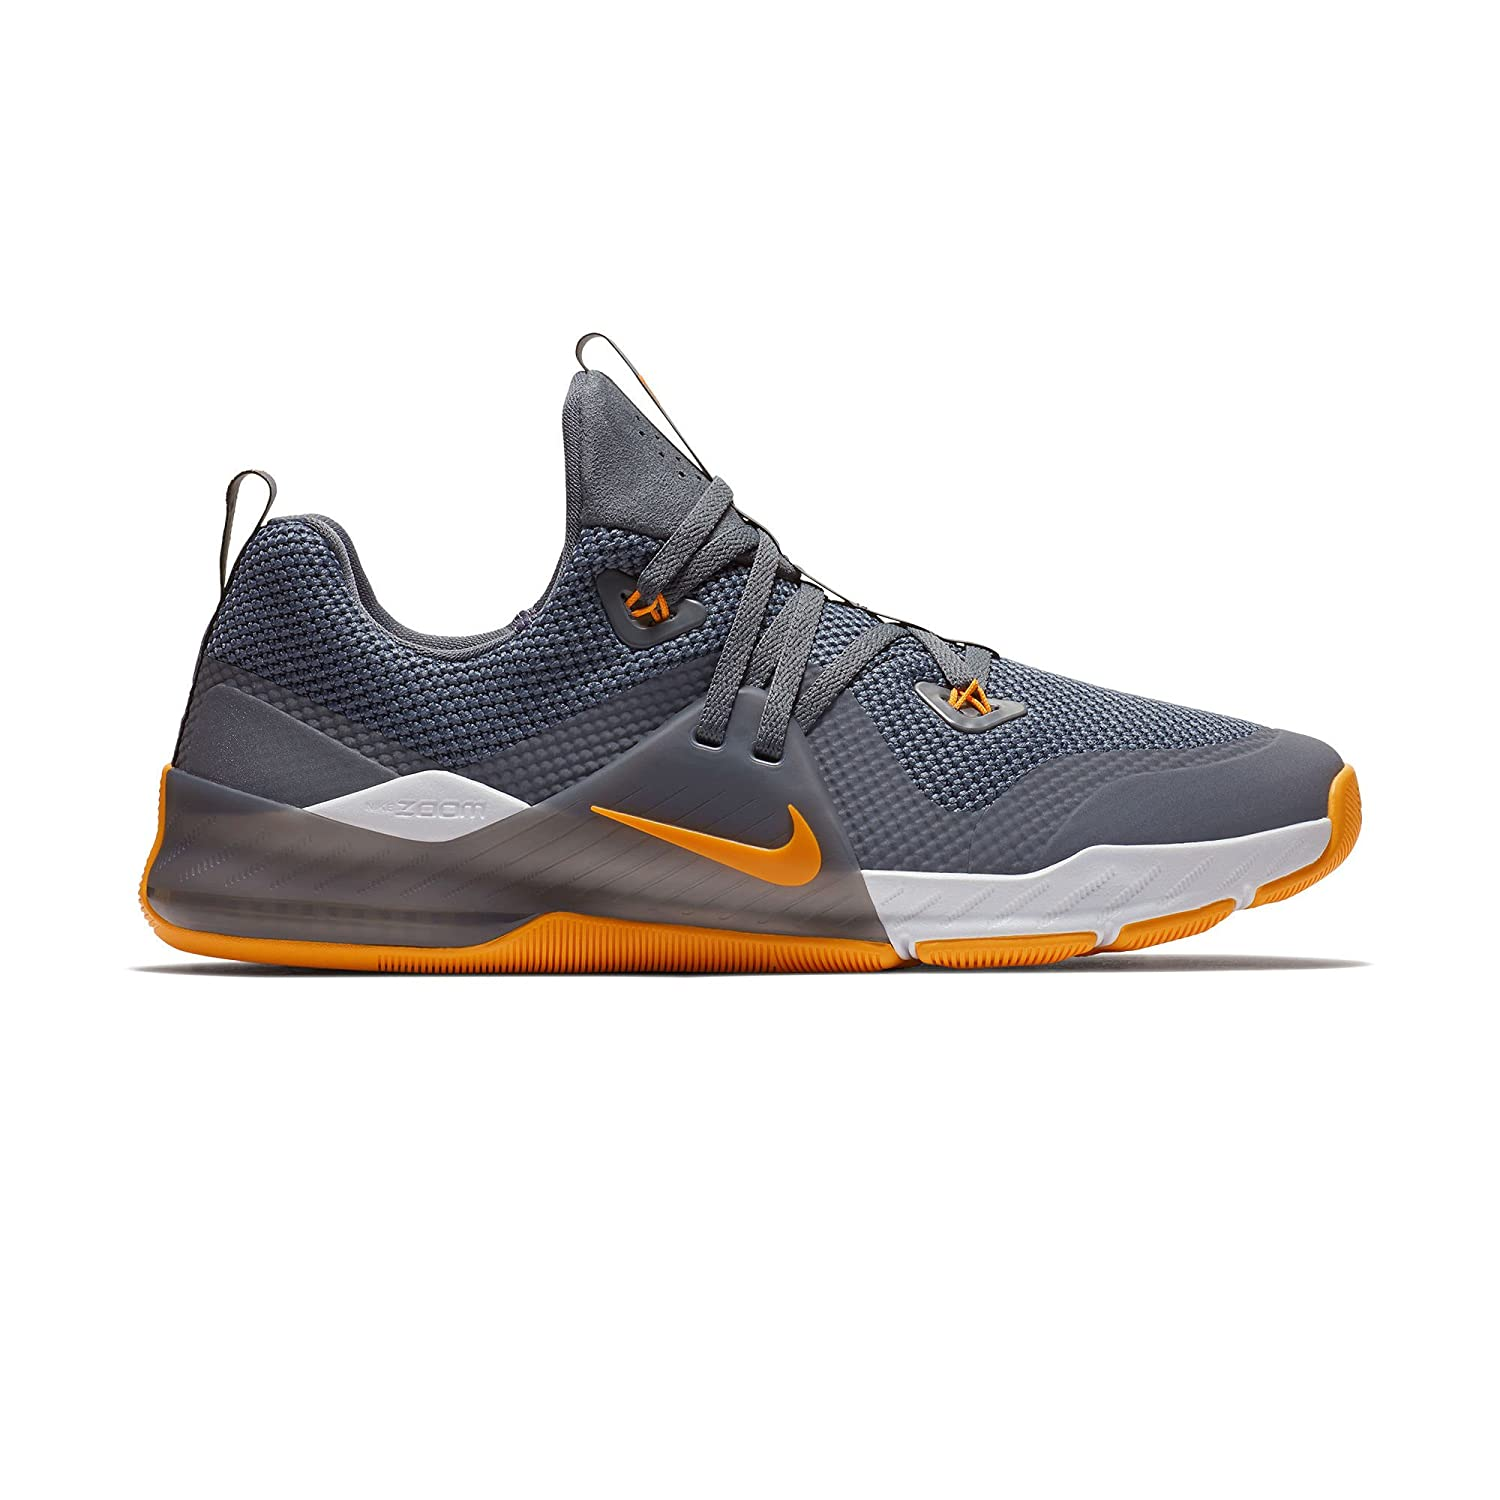 timeless design 689d8 dc88a Nike Tennessee Volunteers Zoom Train Command College Shoes - Size Men s 11  M US  Amazon.ca  Clothing   Accessories